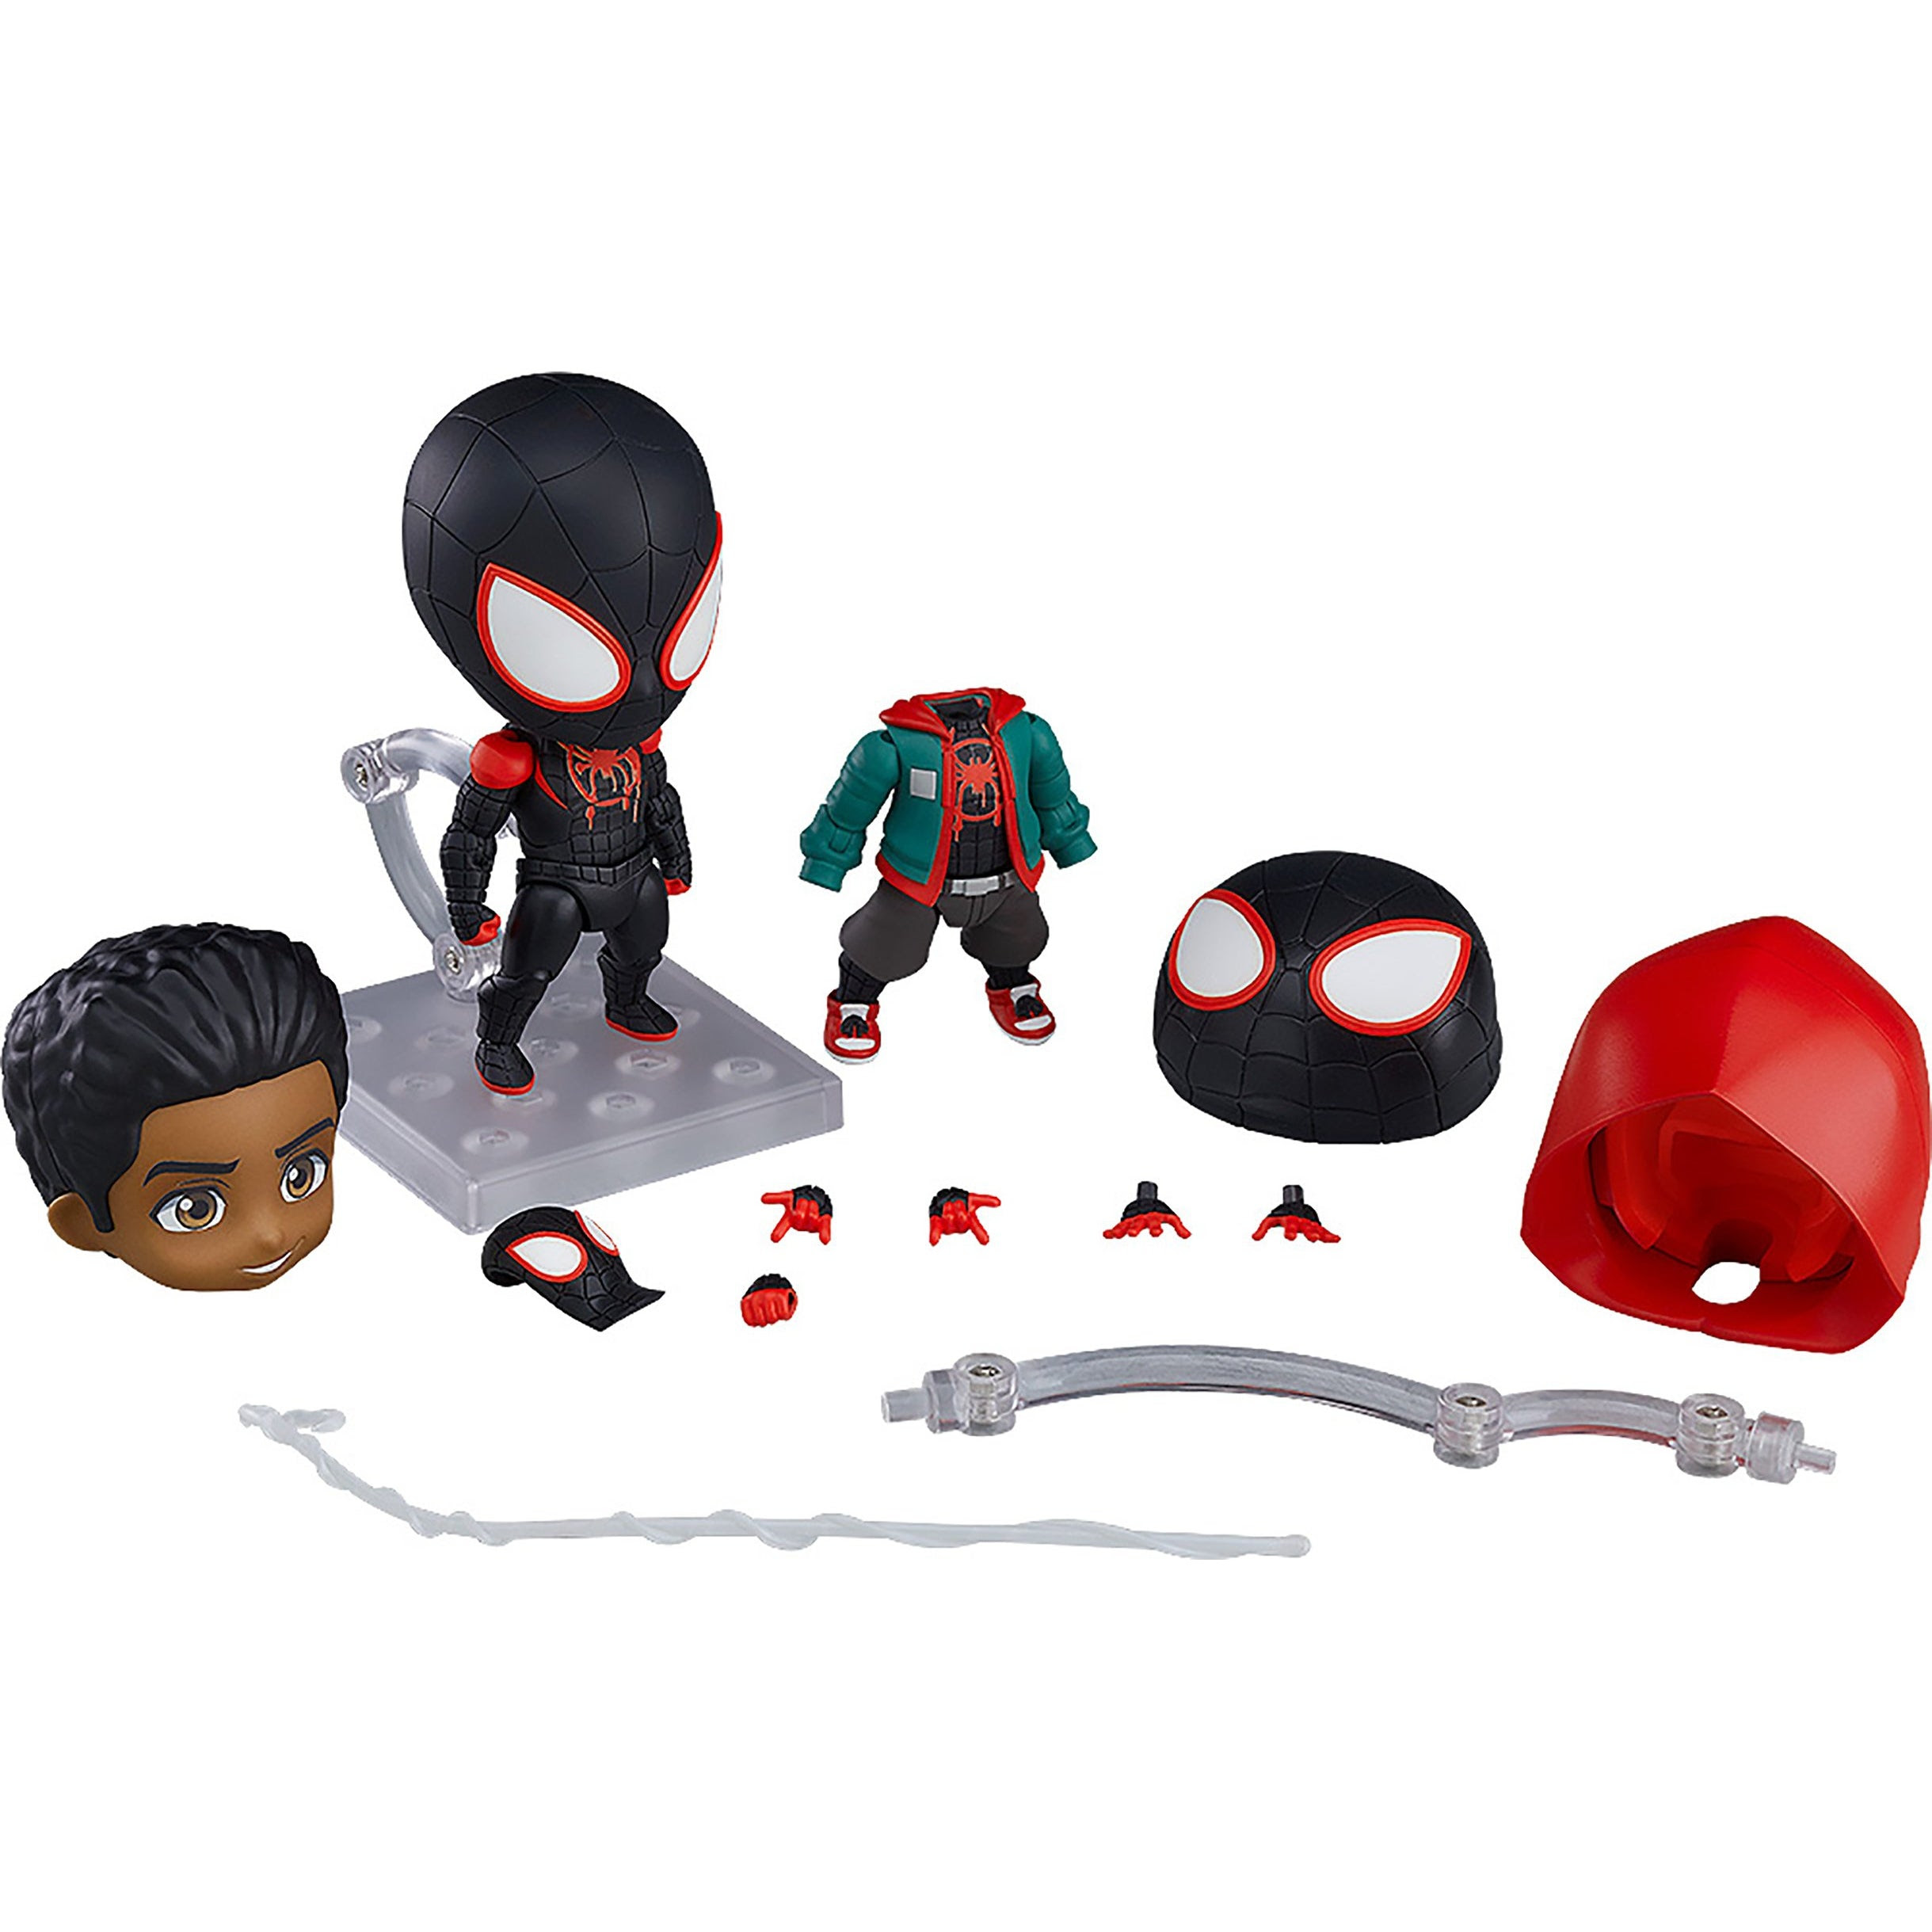 Image of Spider-Man: Into the Spiderverse Miles Morales Nendoroid DX - APRIL 2020